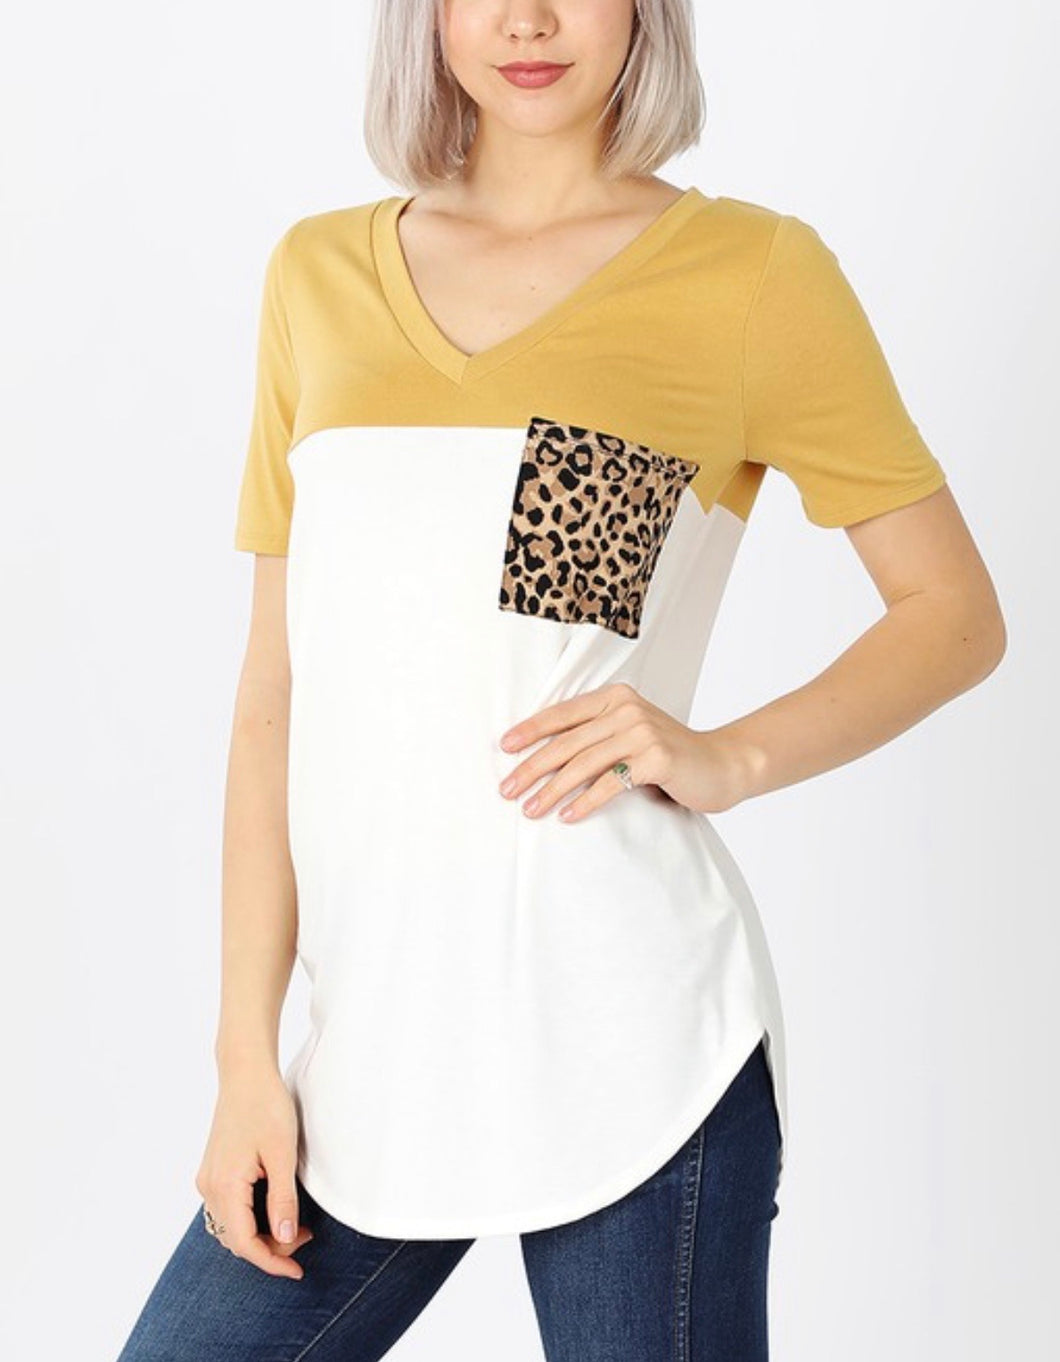 Cheetah Girl Tee - Mustard